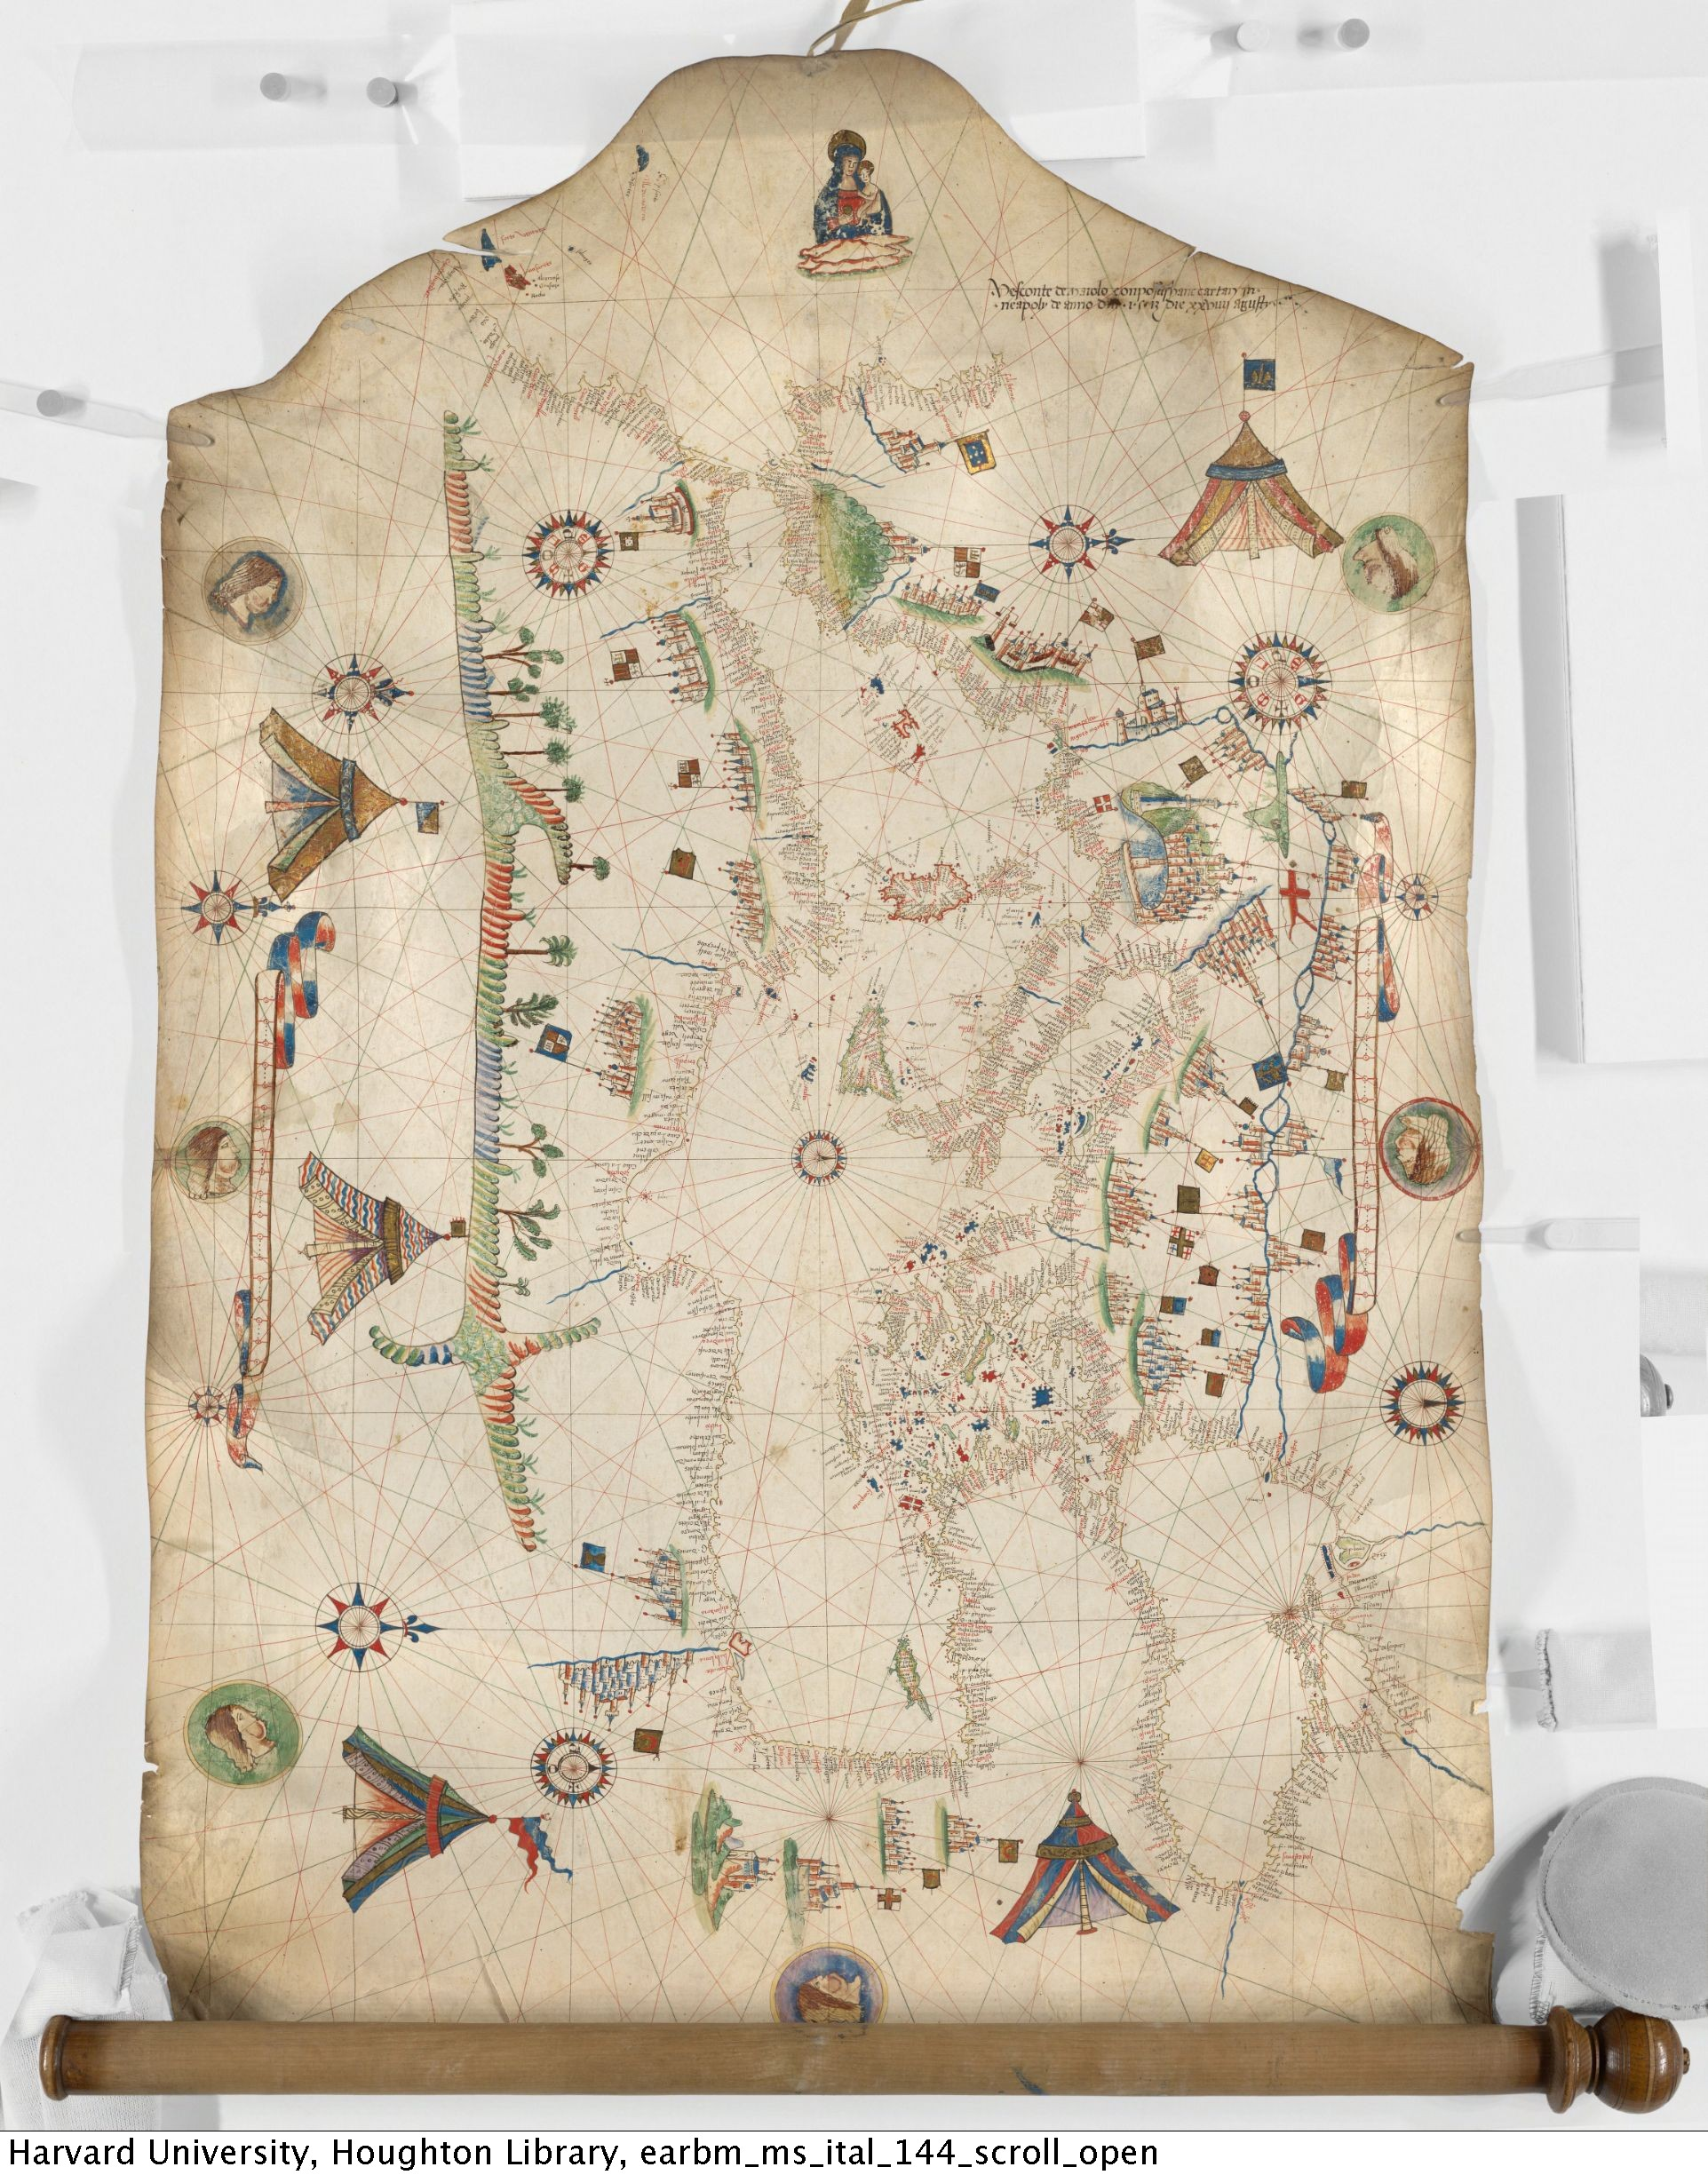 Maggiolo, Vesconte, active 1504-1549. [Portolan chart of the Mediterranean] : manuscript, 1513 Aug. 29. MS Ital 144